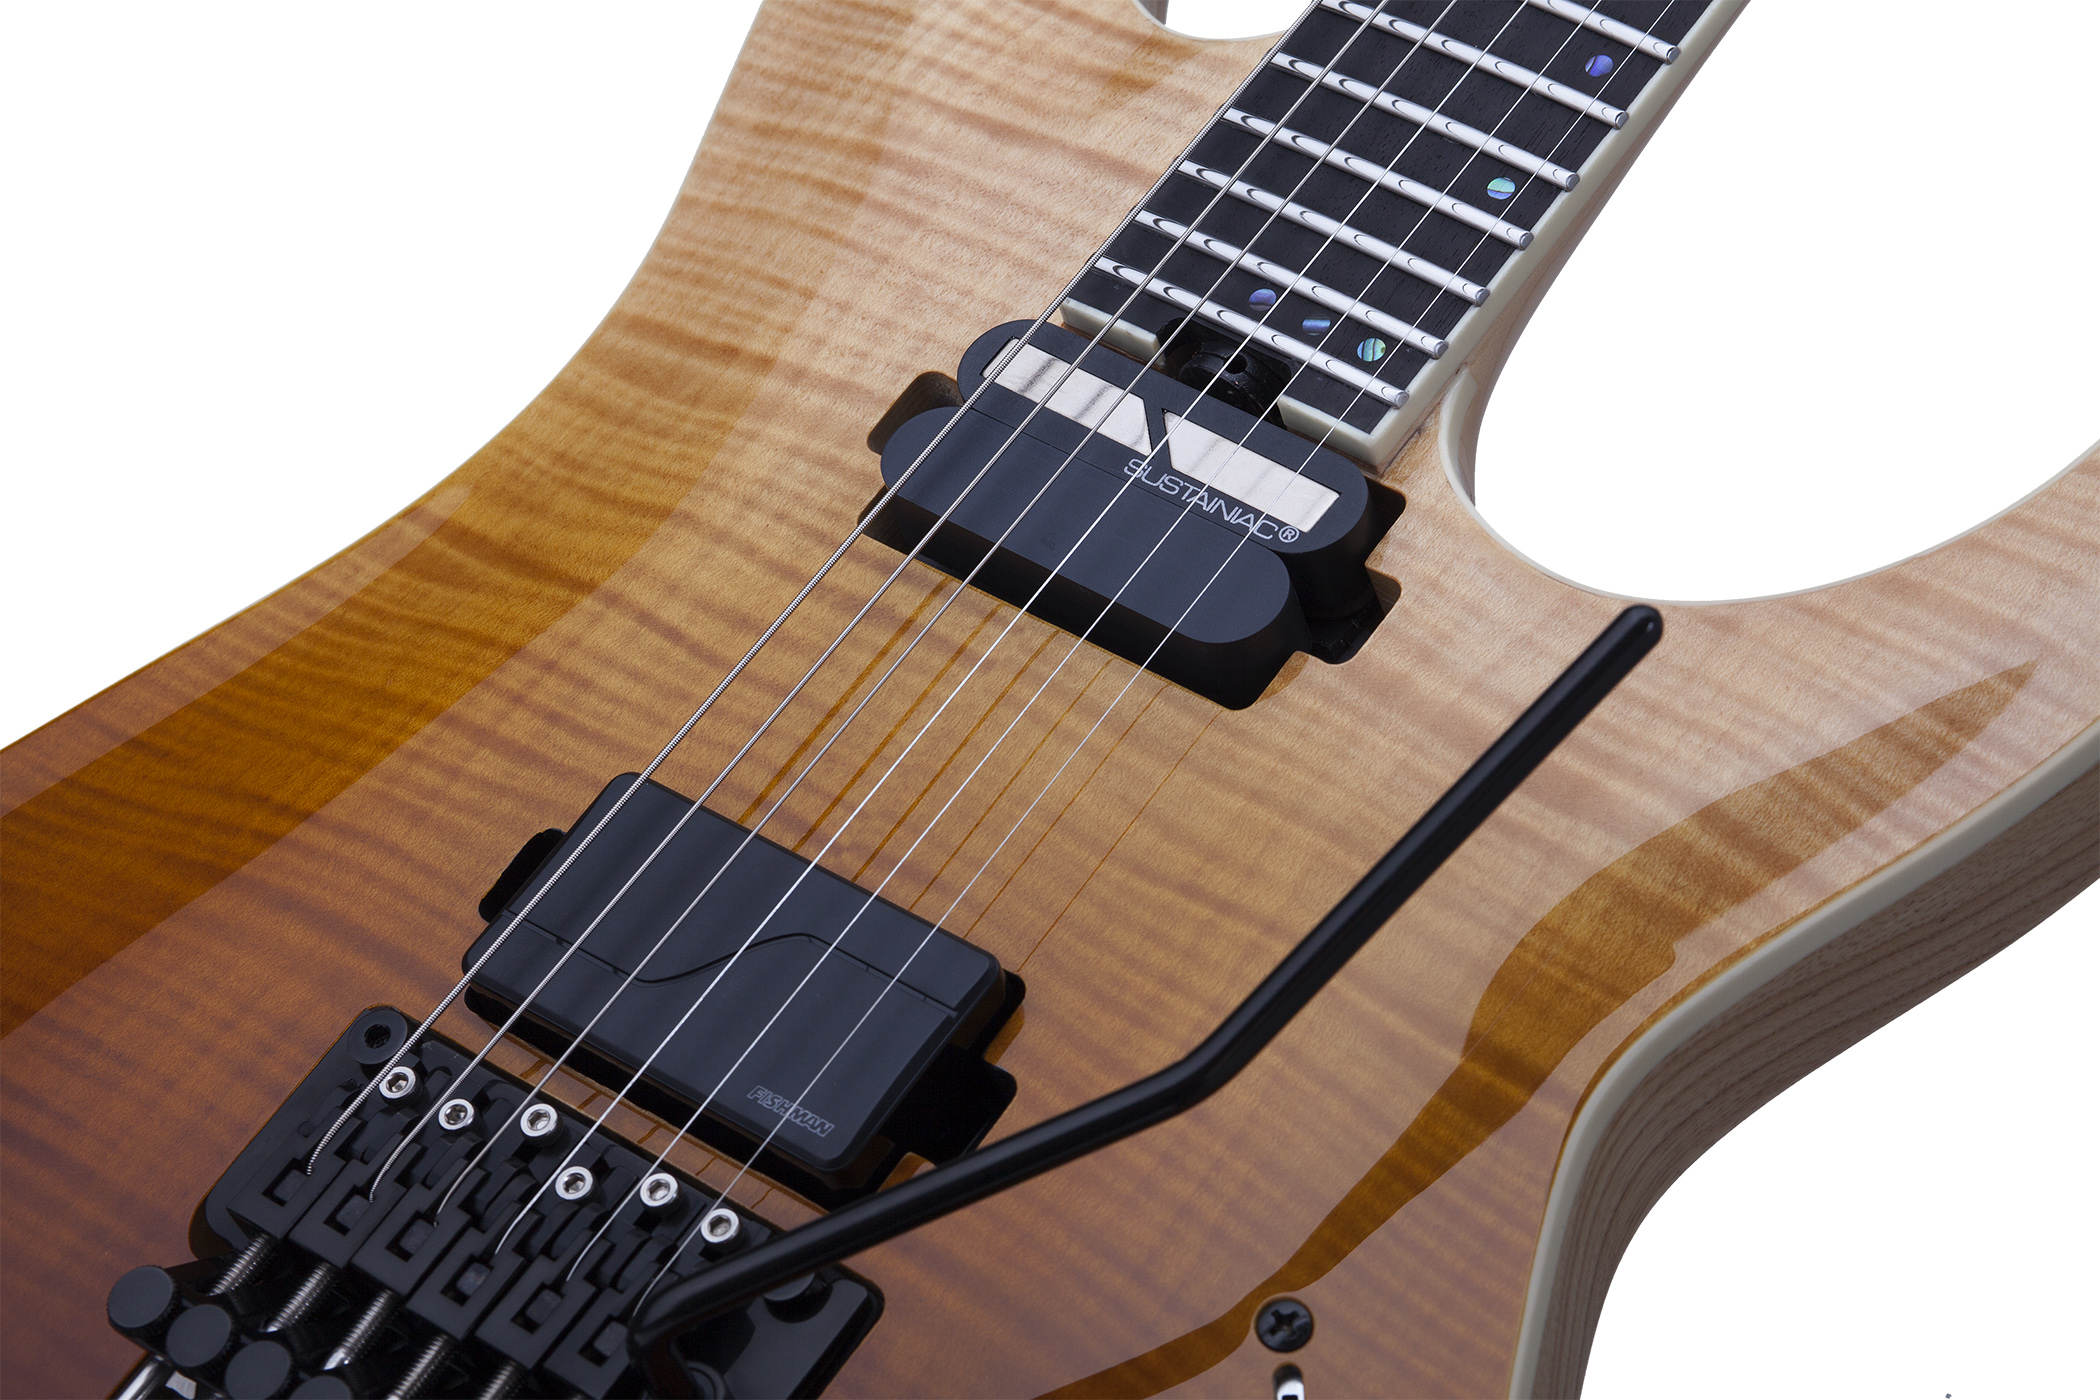 C-1 FR-S SLS ELITE ATQFB PICKUPS FAR